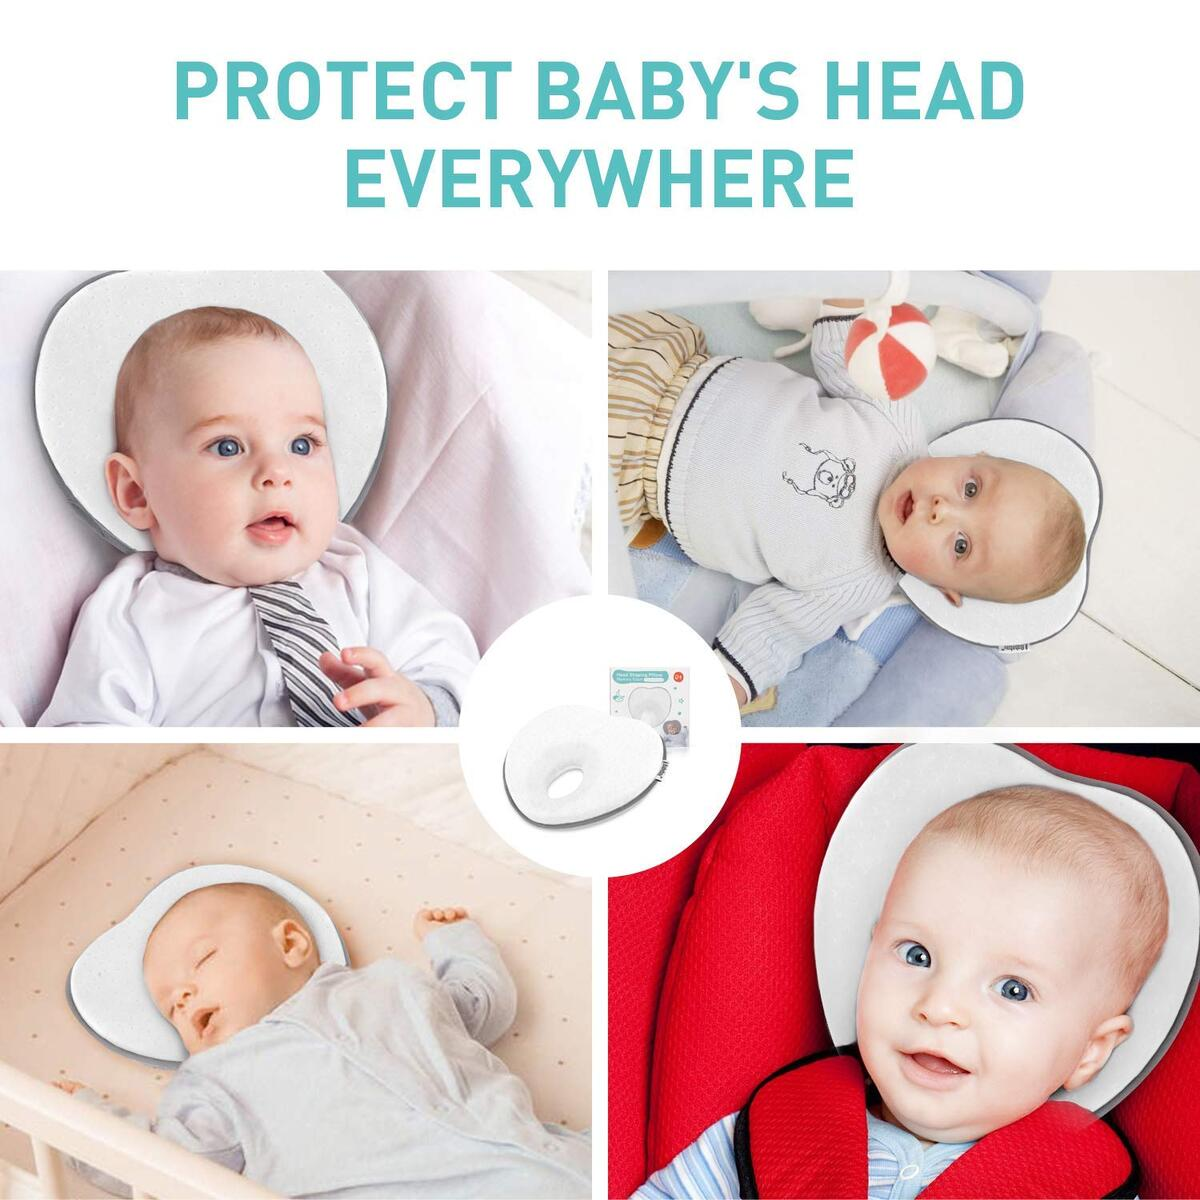 Baby Pillow for Newborn Infant,Flat Head Prevent 3D Memory Foam with Pillowcase Can Support Head & Neck Pillow,Head Shaping Pillow,Heart Shaped 0-12months(White)…